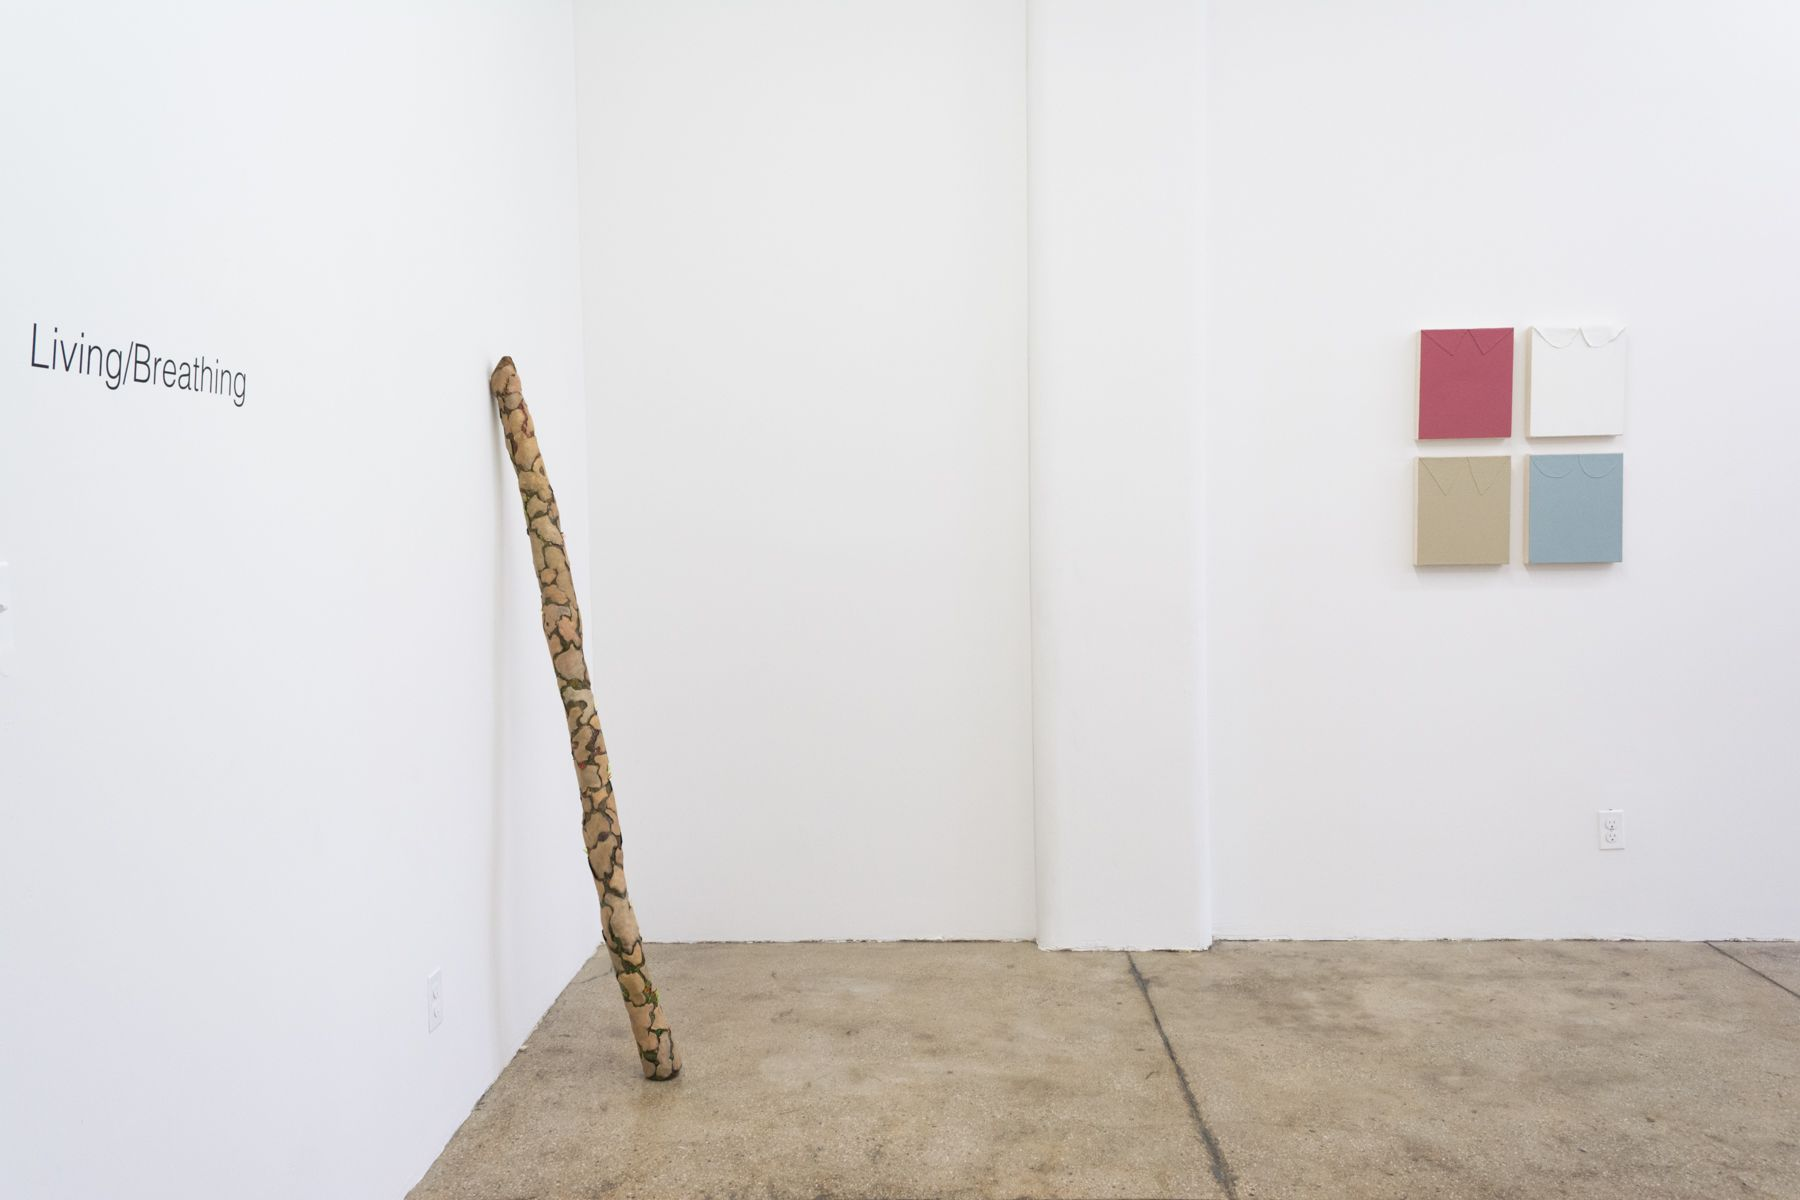 Installation View (Courtesy of Morgan Lehman Gallery)